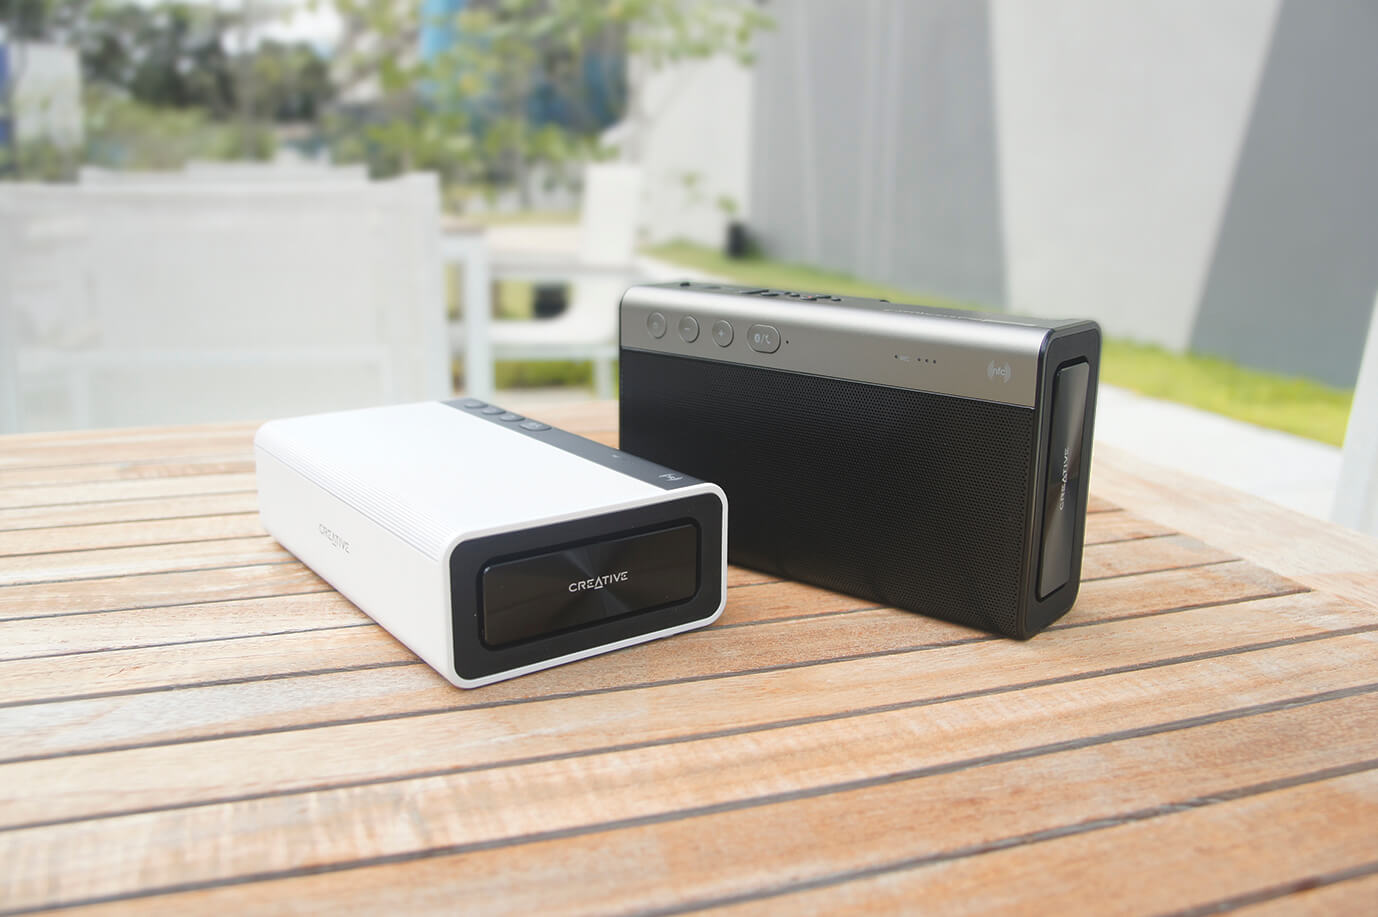 Creative unveiled the new Sound Blaster in Mosque review